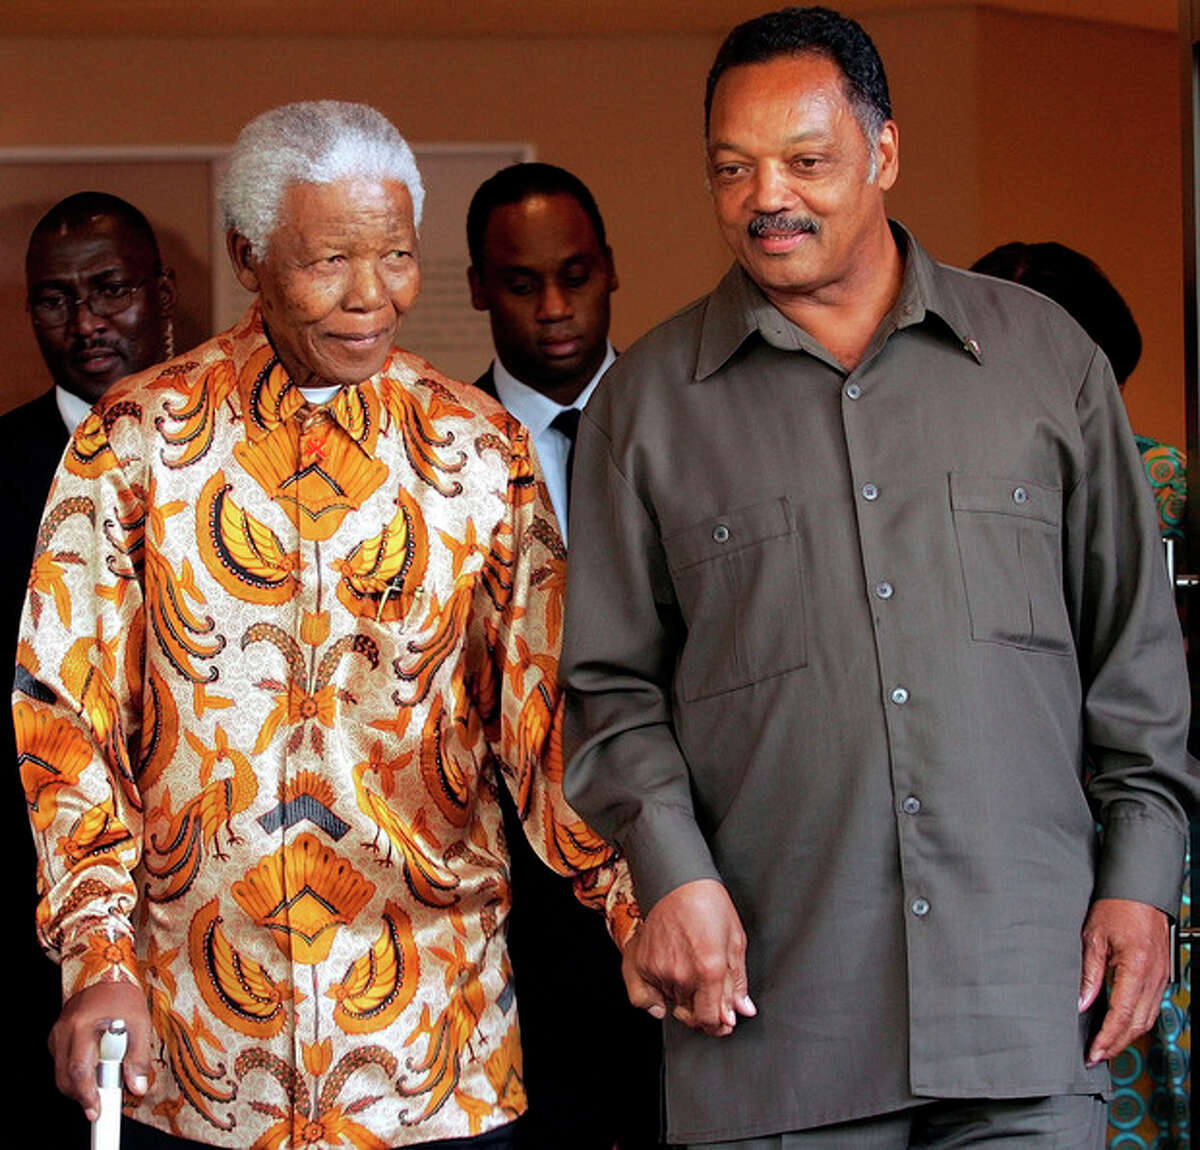 FILE - In this Oct. 26, 2005 file photo, former South African President Nelson Mandela, left, walks with the Rev. Jesse Jackson after their meeting in Johannesburg, South Africa. South Africa's president Jacob Zuma says, Thursday, Dec. 5, 2013, that Mandela has died. He was 95. (AP Photo/Themba Hadebe, File)